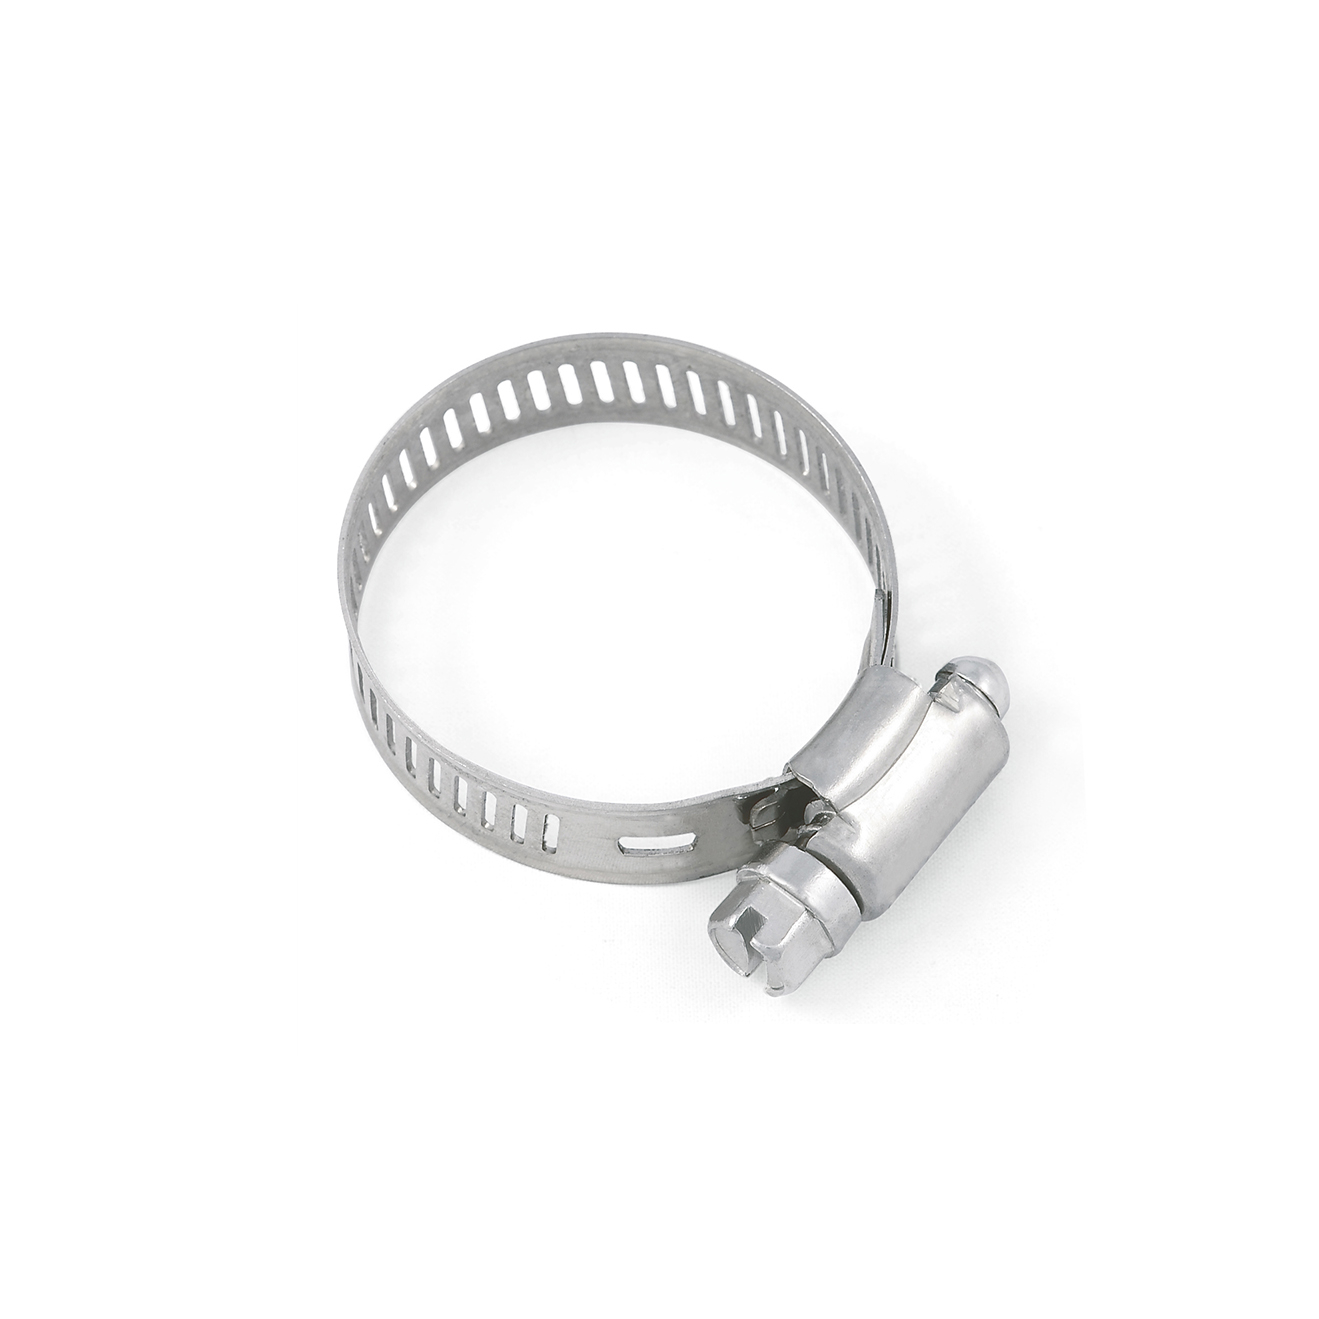 FASCETTE STRING INOX 38-50 MM PZ 2